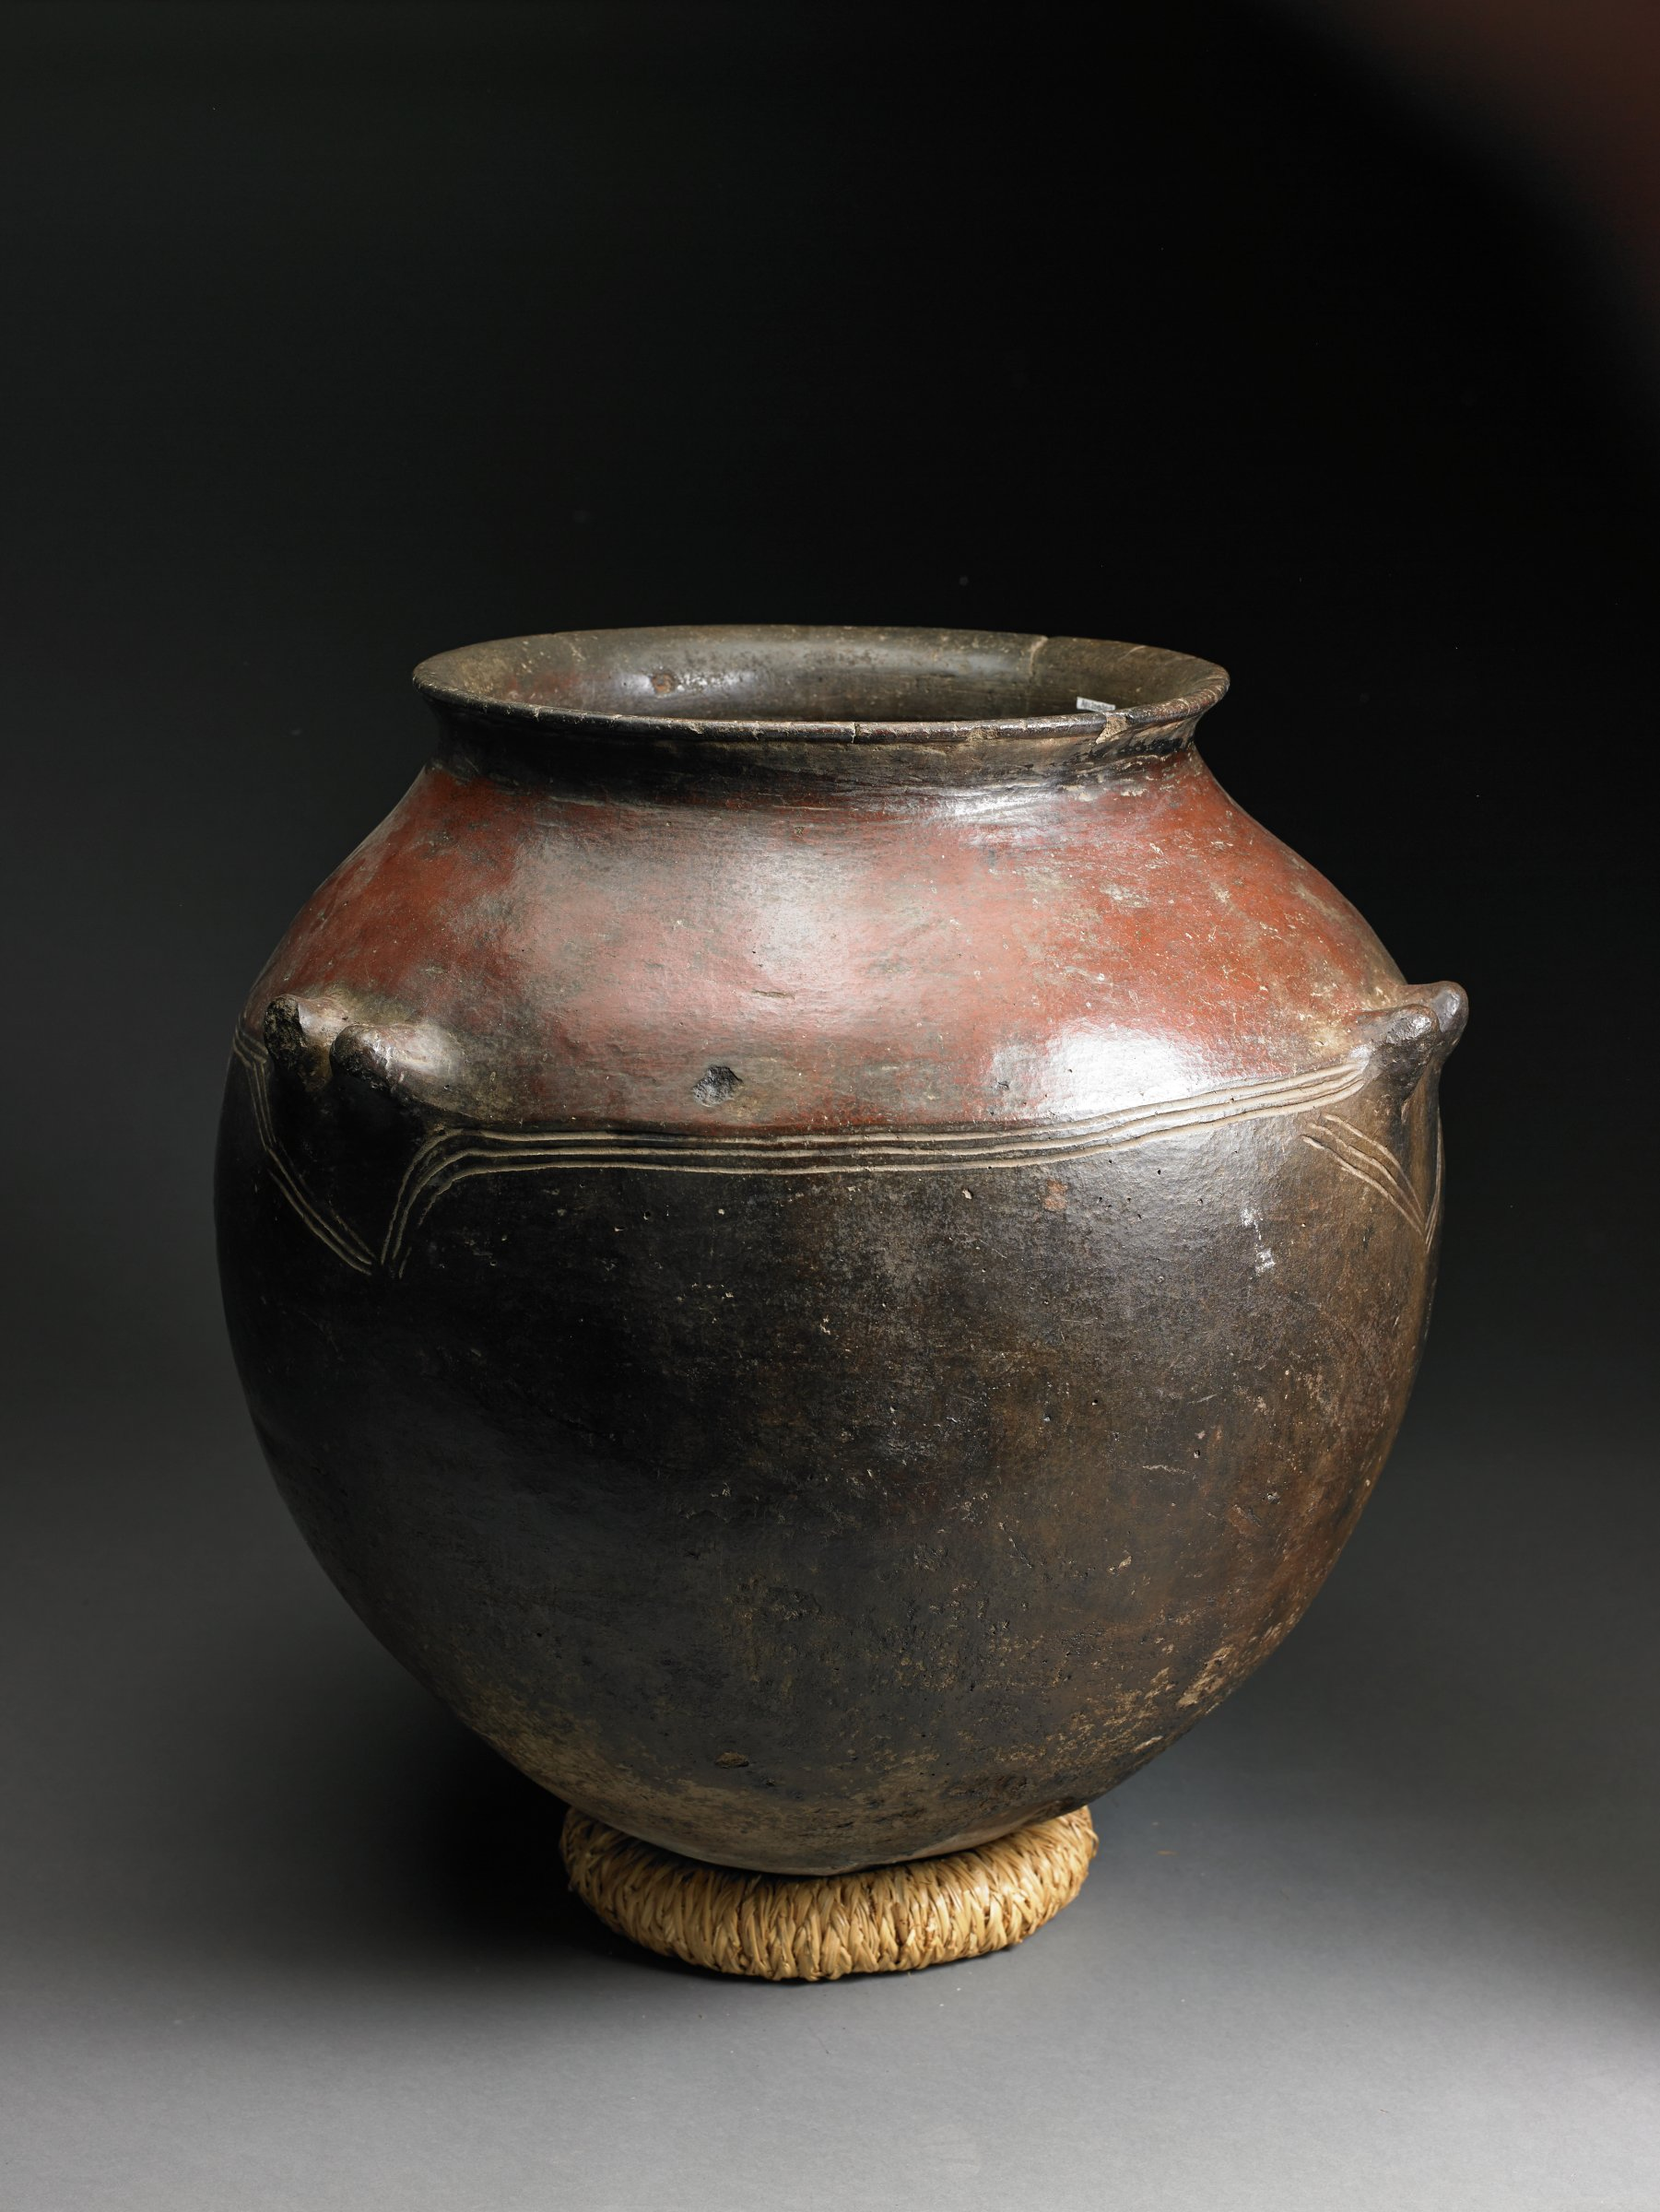 Round, dark brown vessel with glossy surface has short, curved rim. Three parallel incised lines mark shoulder, which has four pairs of upturned knob handles.